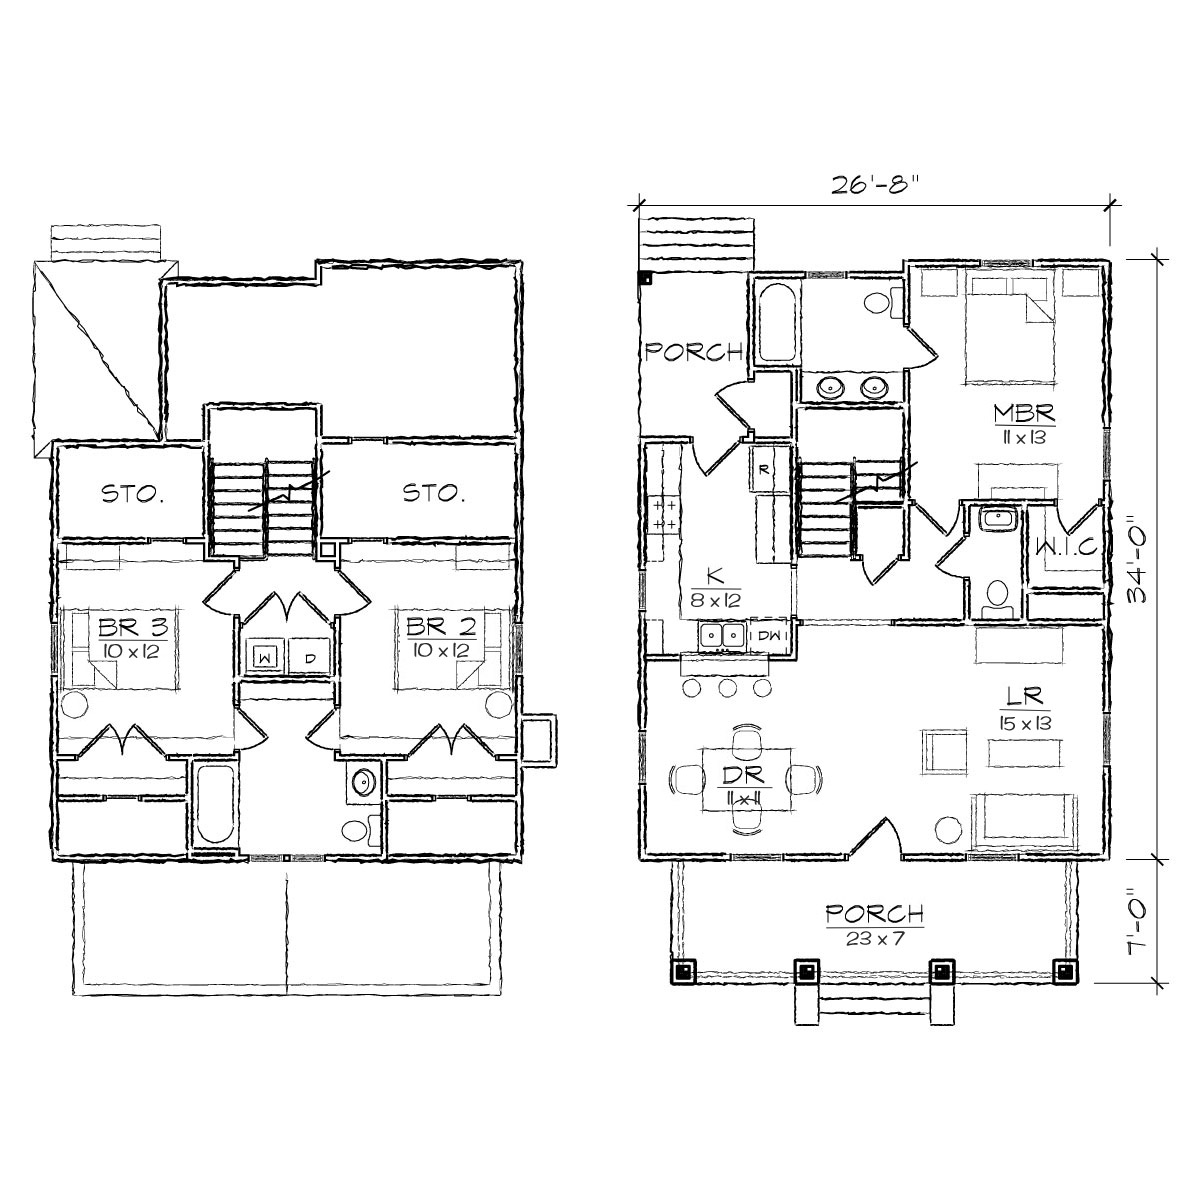 Bungalow house floor plans with dormers robinson bungalow Dormer house plans